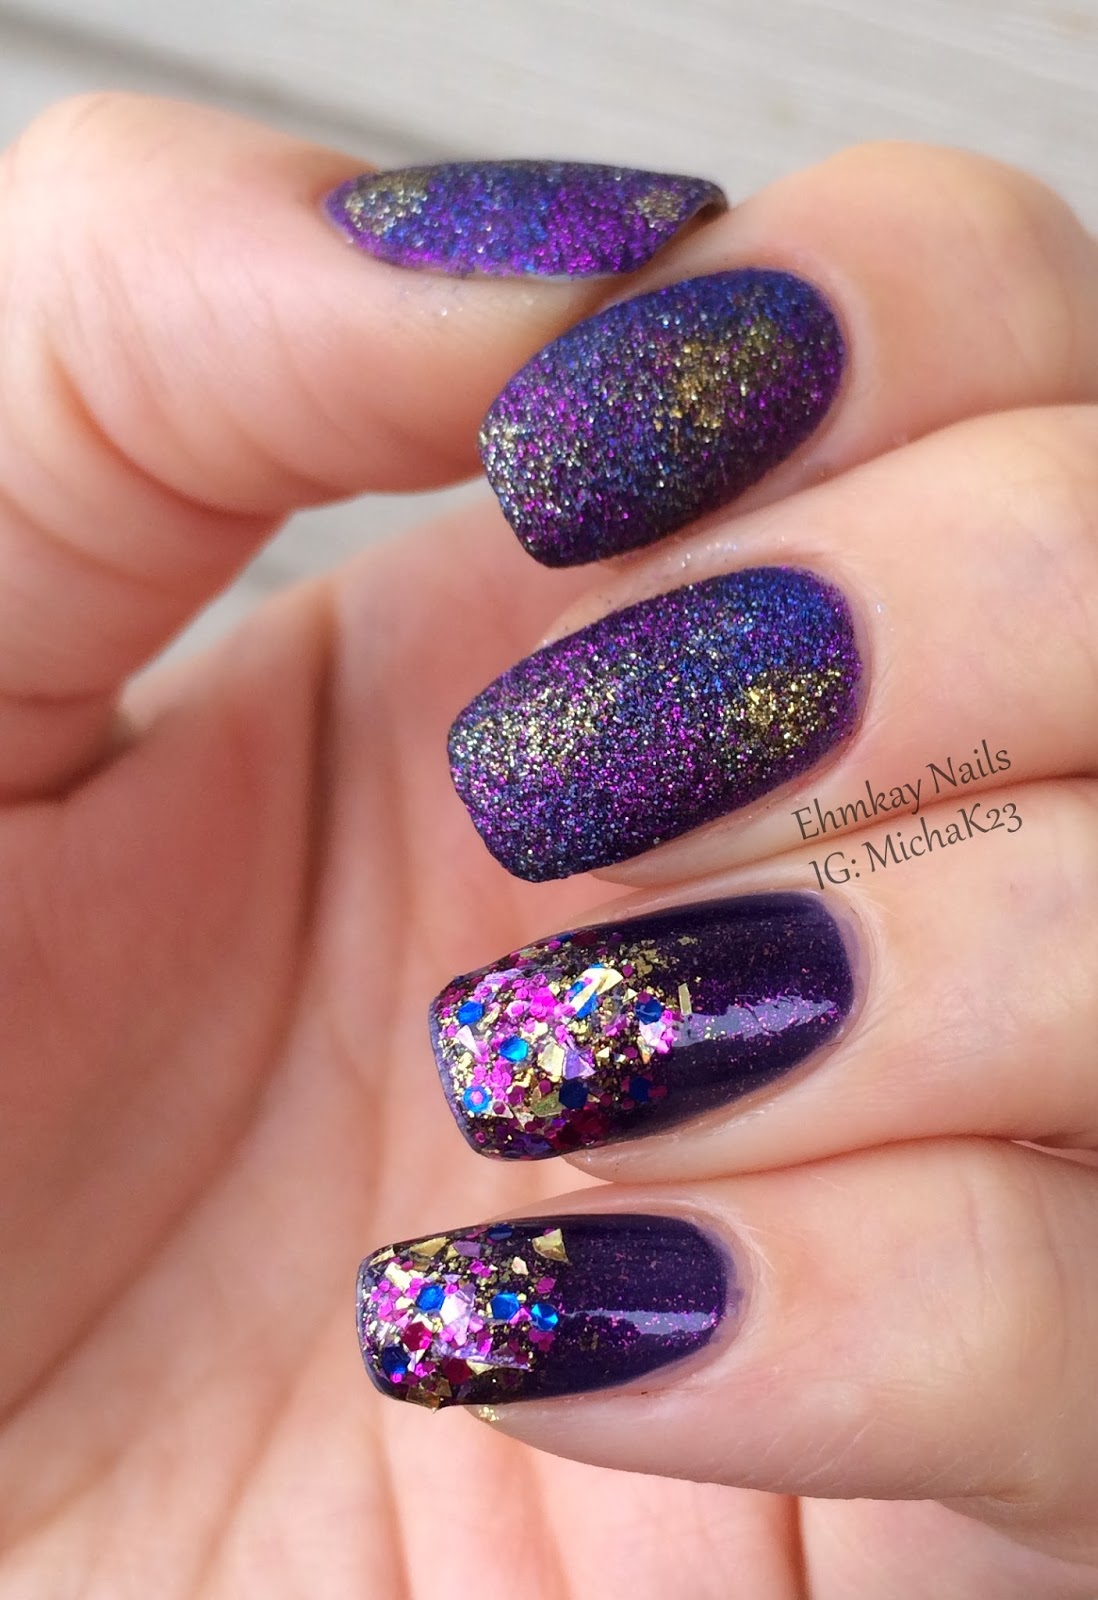 Ehmkay Nails New Year S Eve Nail Art With Kbshimmer Bling: Ehmkay Nails: Texture Saran Wrap And Glitter Gradient Manicure